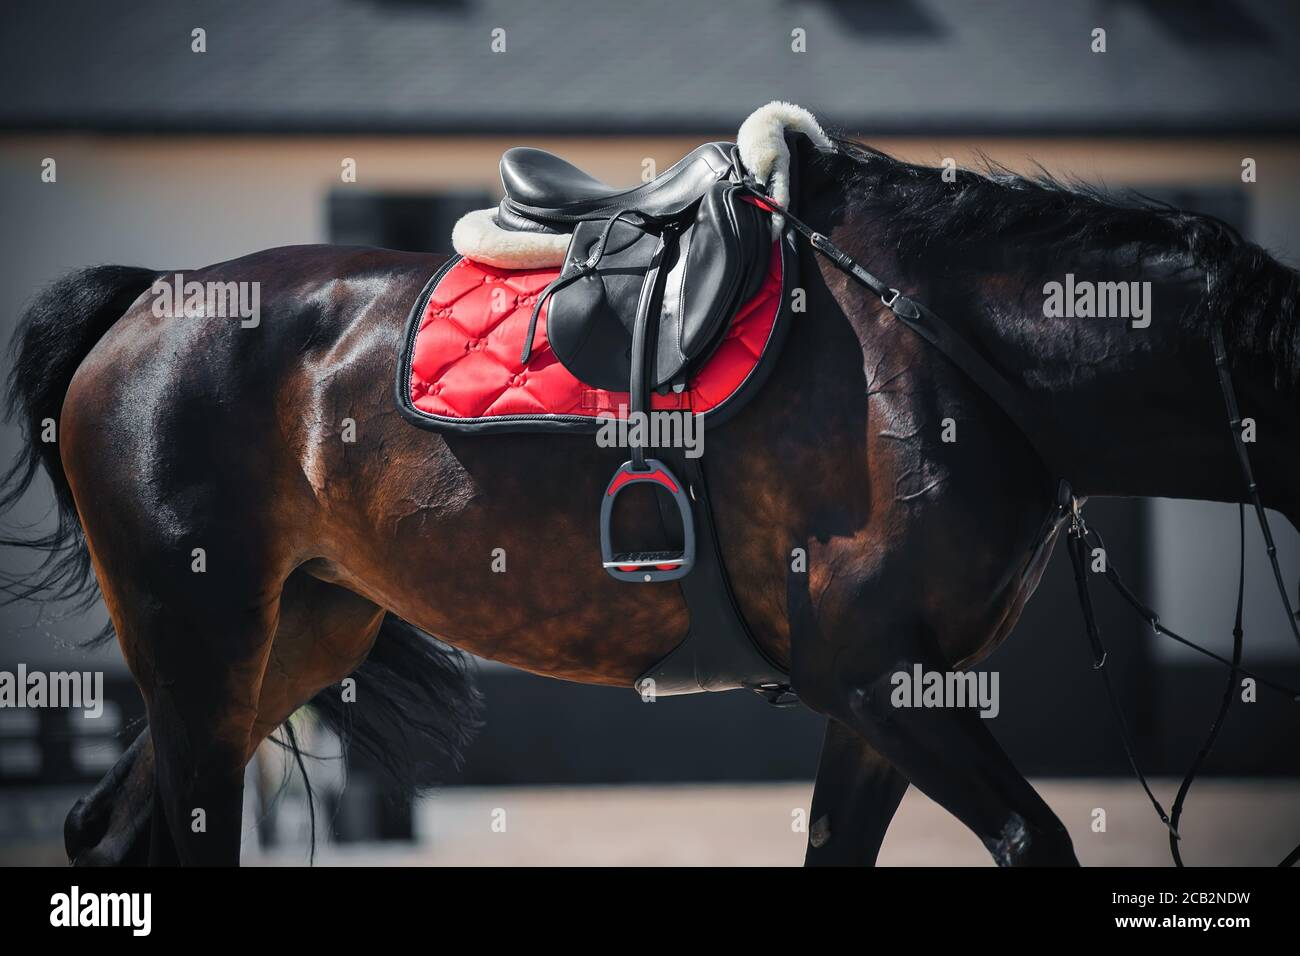 A Beautiful Bay Horse With A Long Tail Is Wearing Sports Equipment A Black Leather Saddle A Red Saddlecloth And A Stirrup Equestrian Sport Stock Photo Alamy